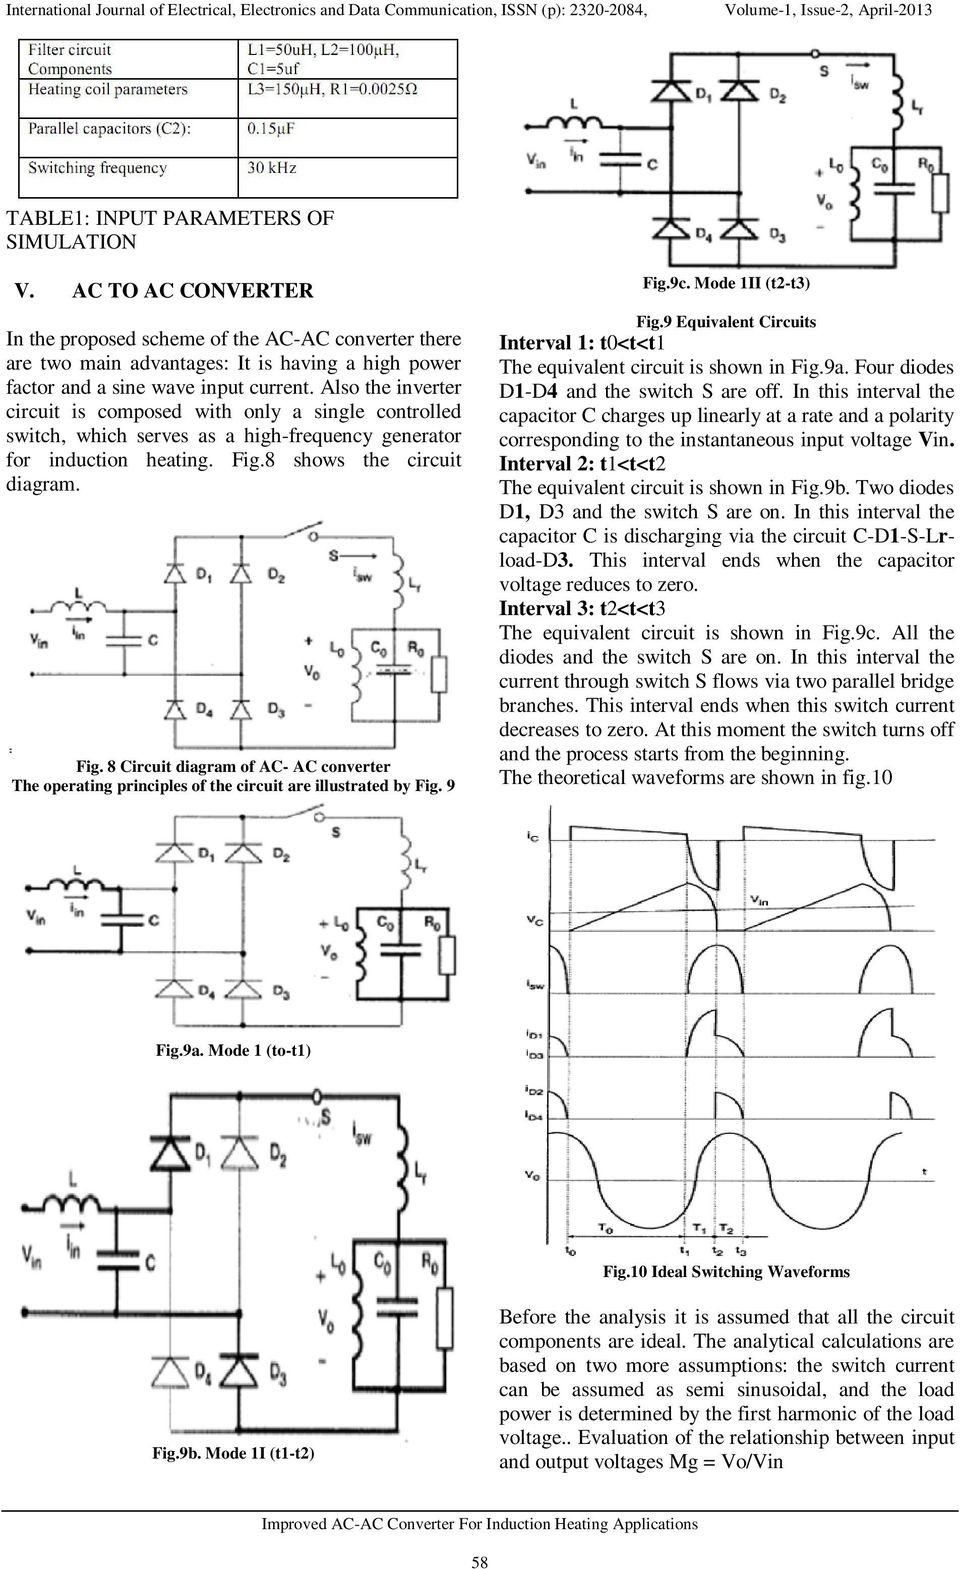 Improved Ac Converter For Induction Heating Applications Pdf Diagram Also The Inverter Circuit Is Composed With Only A Single Controlled Switch Which Serves As